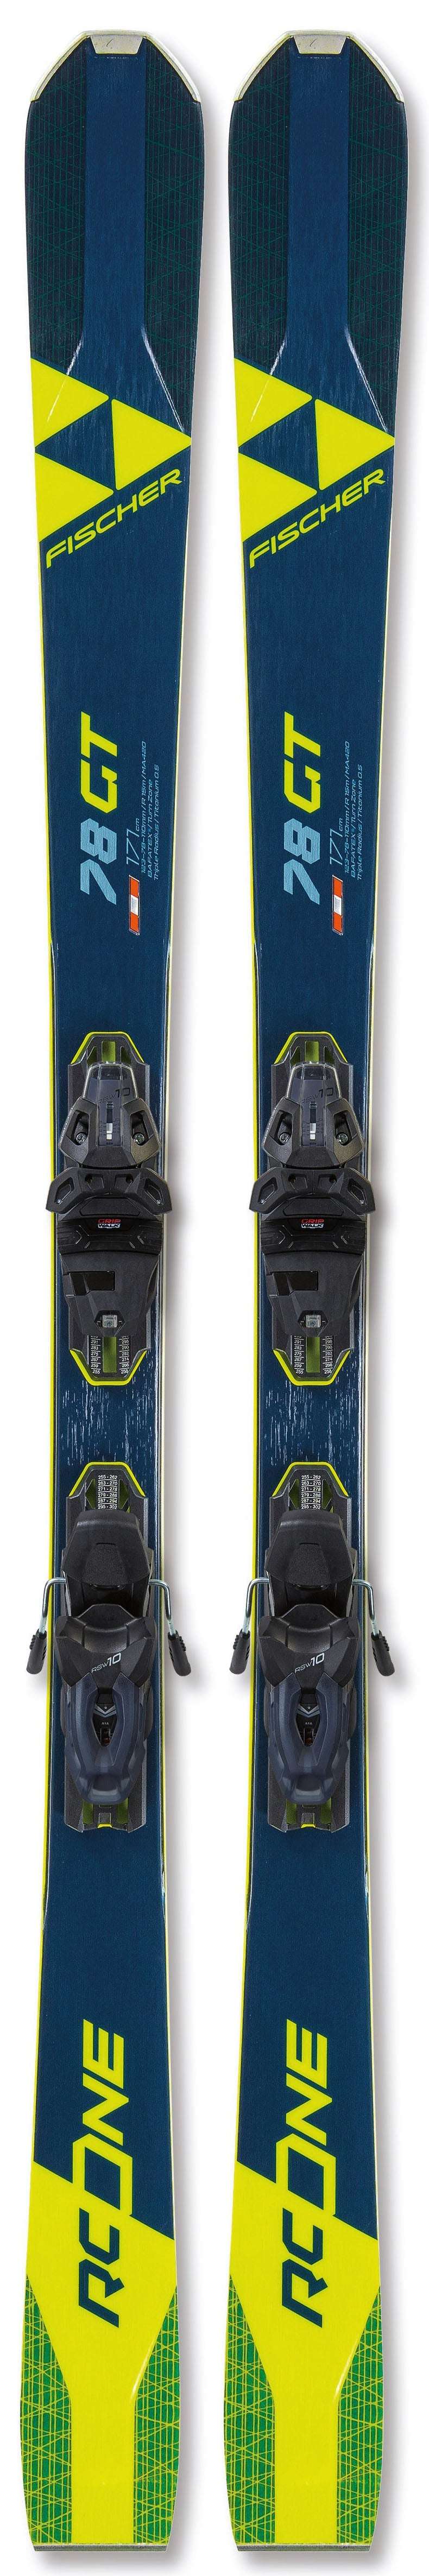 Fischer RC One 78 GT Skis 2021 w/bindings